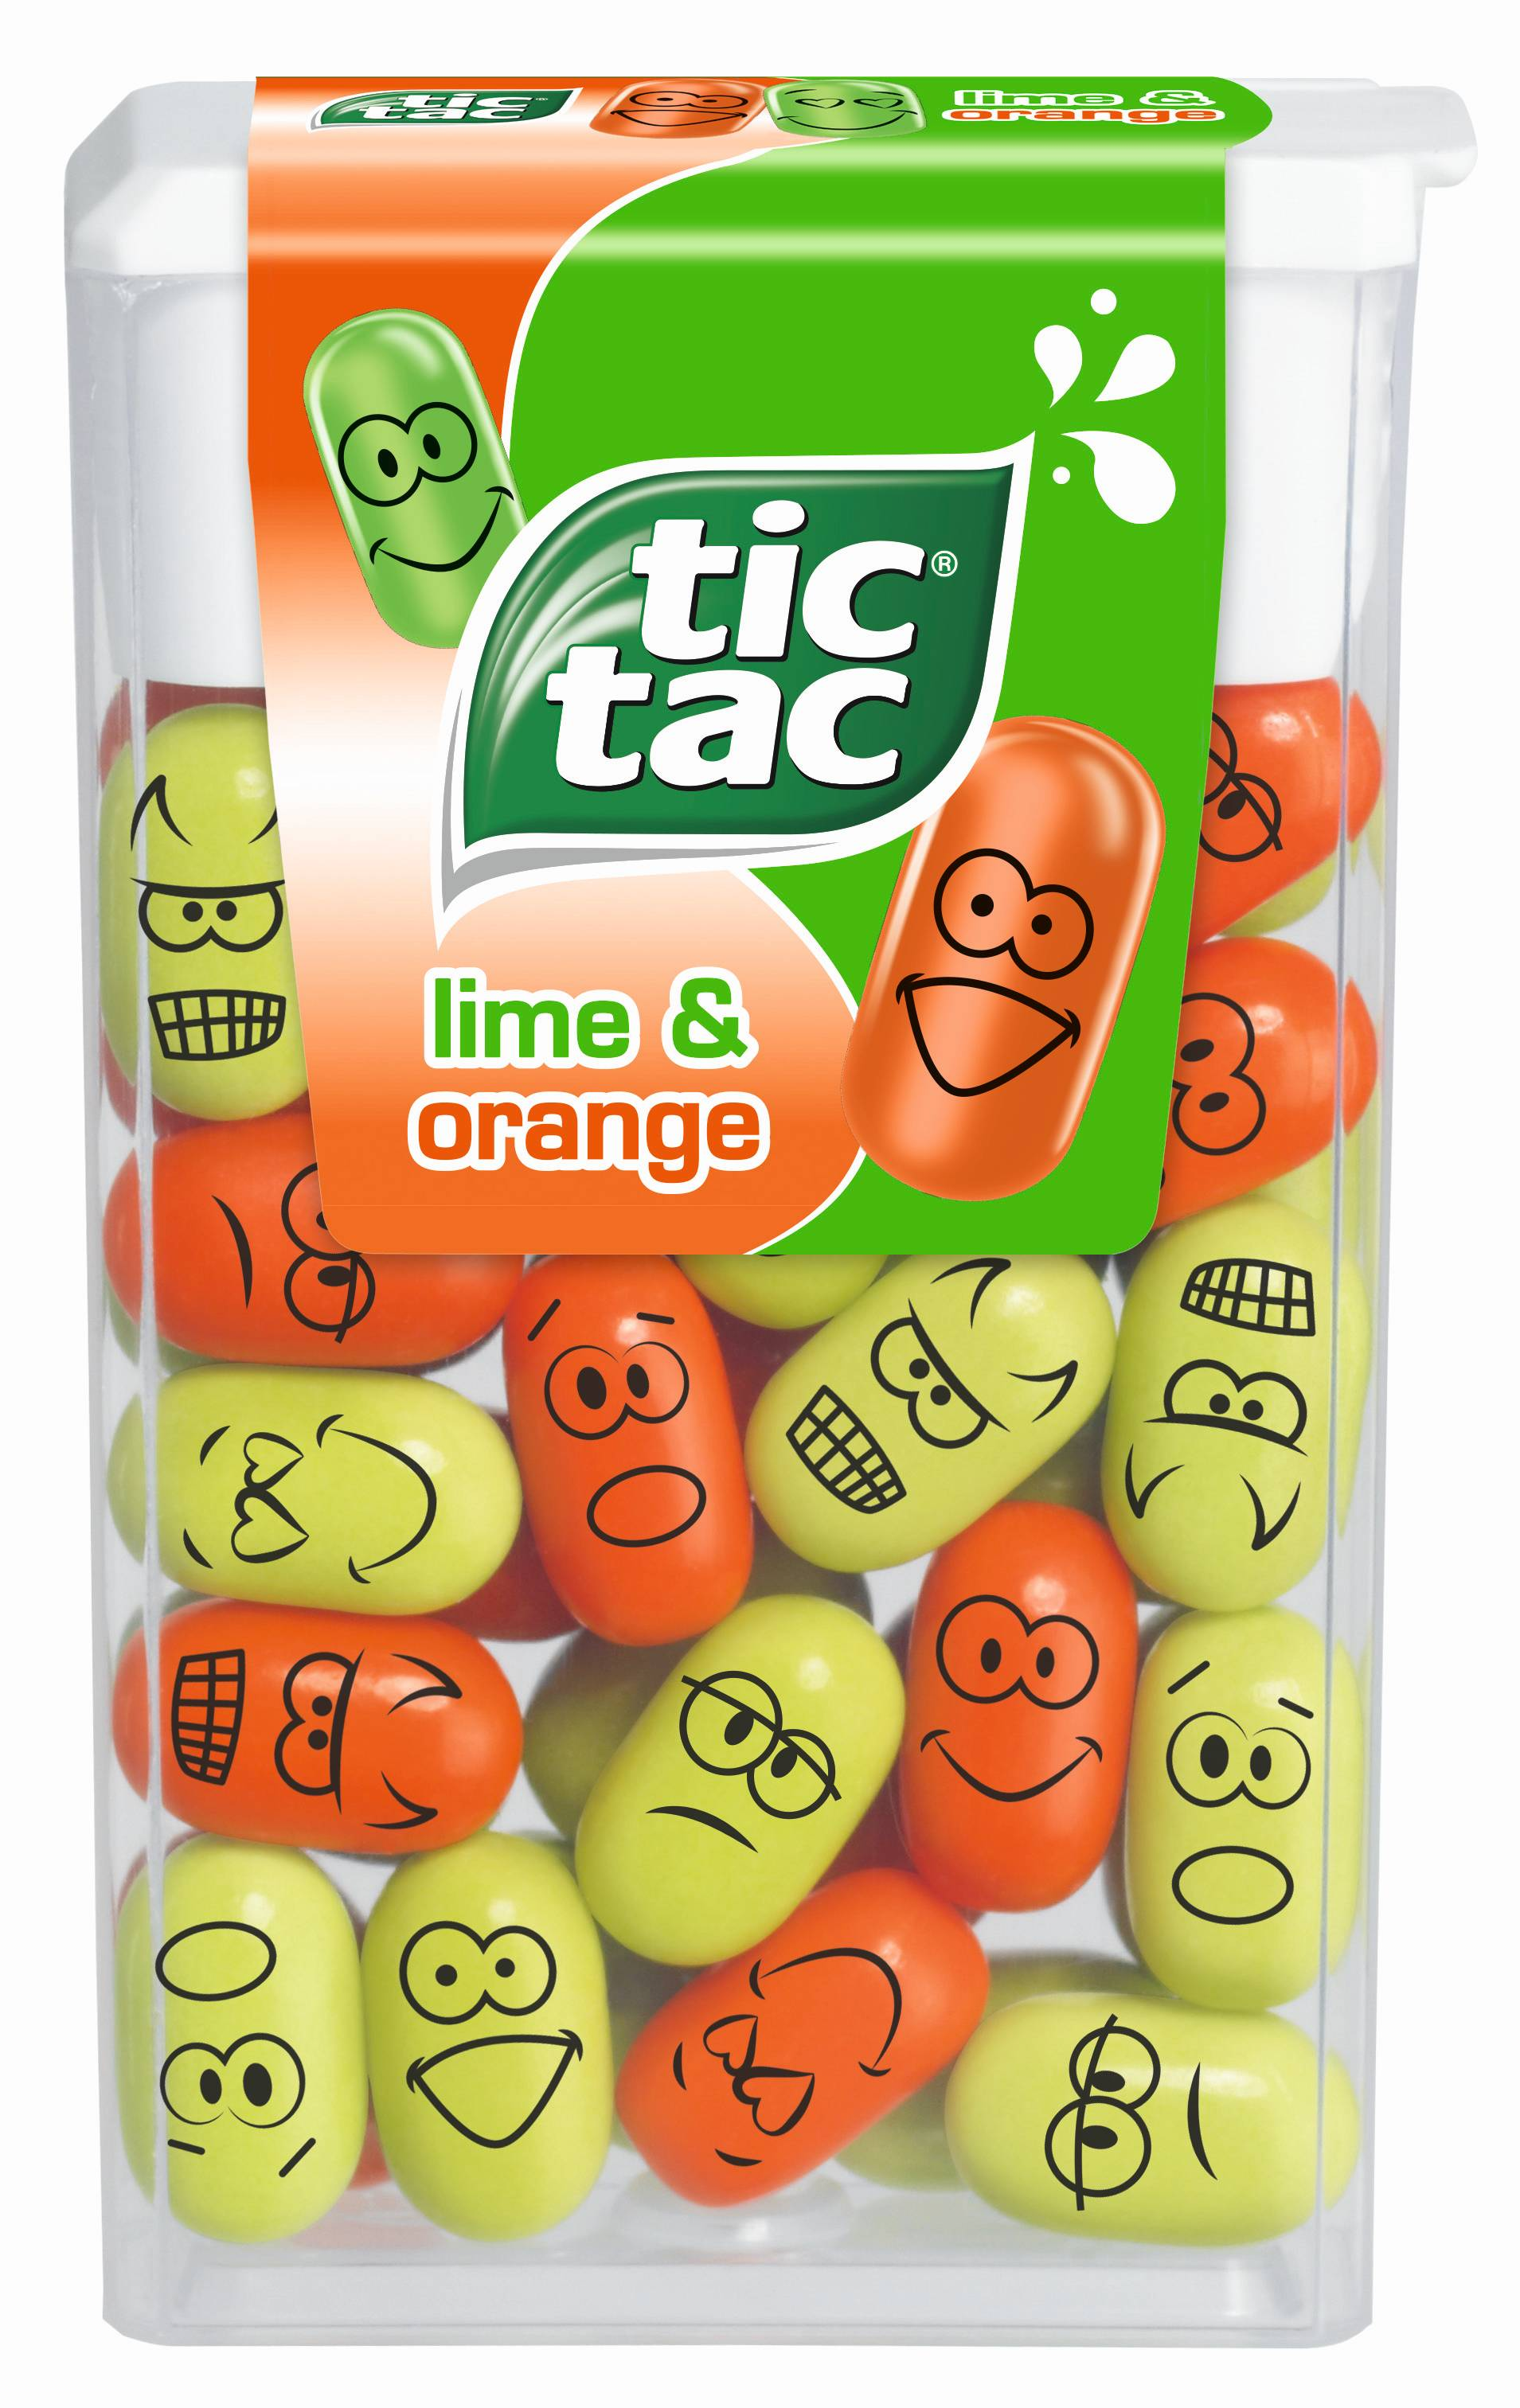 Tic Tac launches \'Express Yourself\' campaign